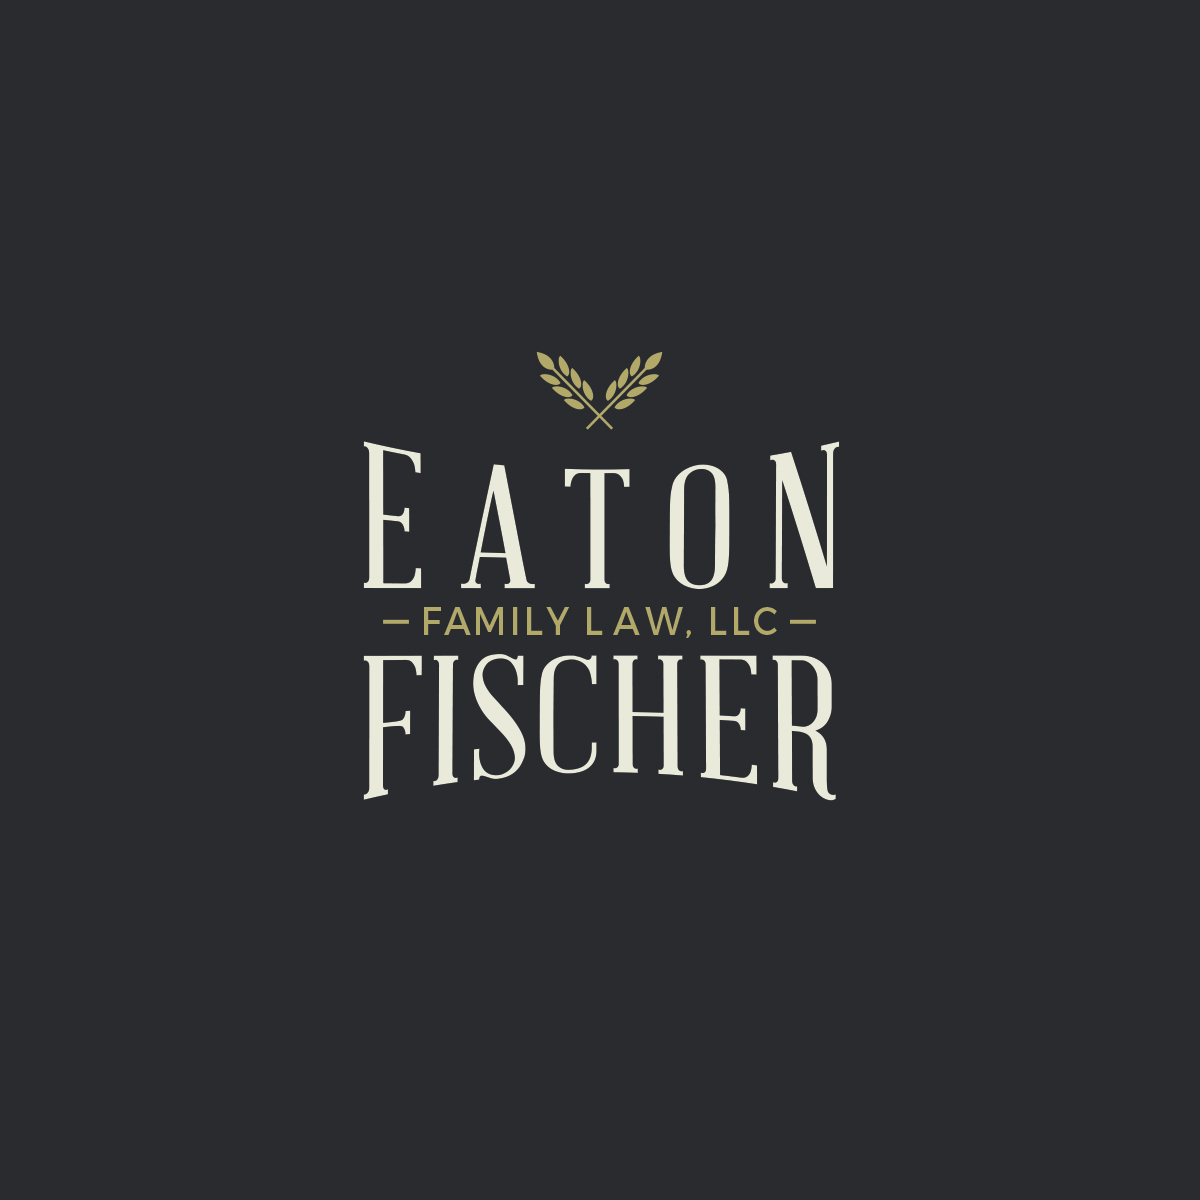 Eaton Fischer Family Law, LLC